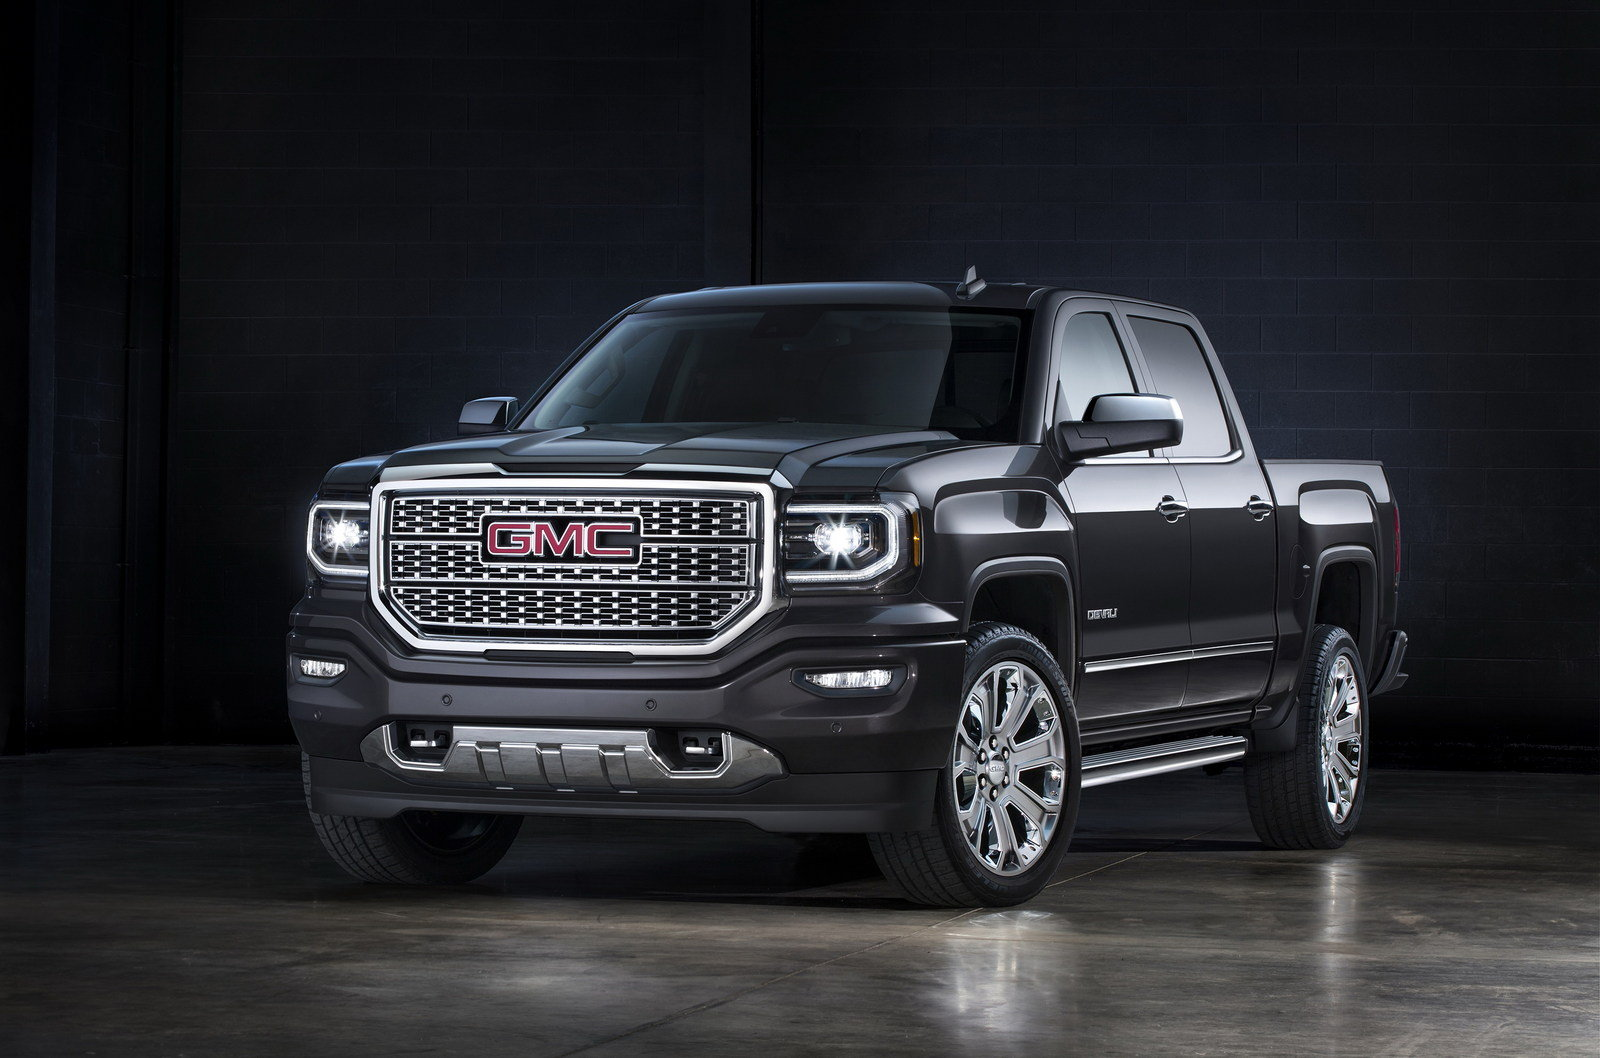 2017 Gmc Sierra Denali Ultimate Picture 655875 Truck